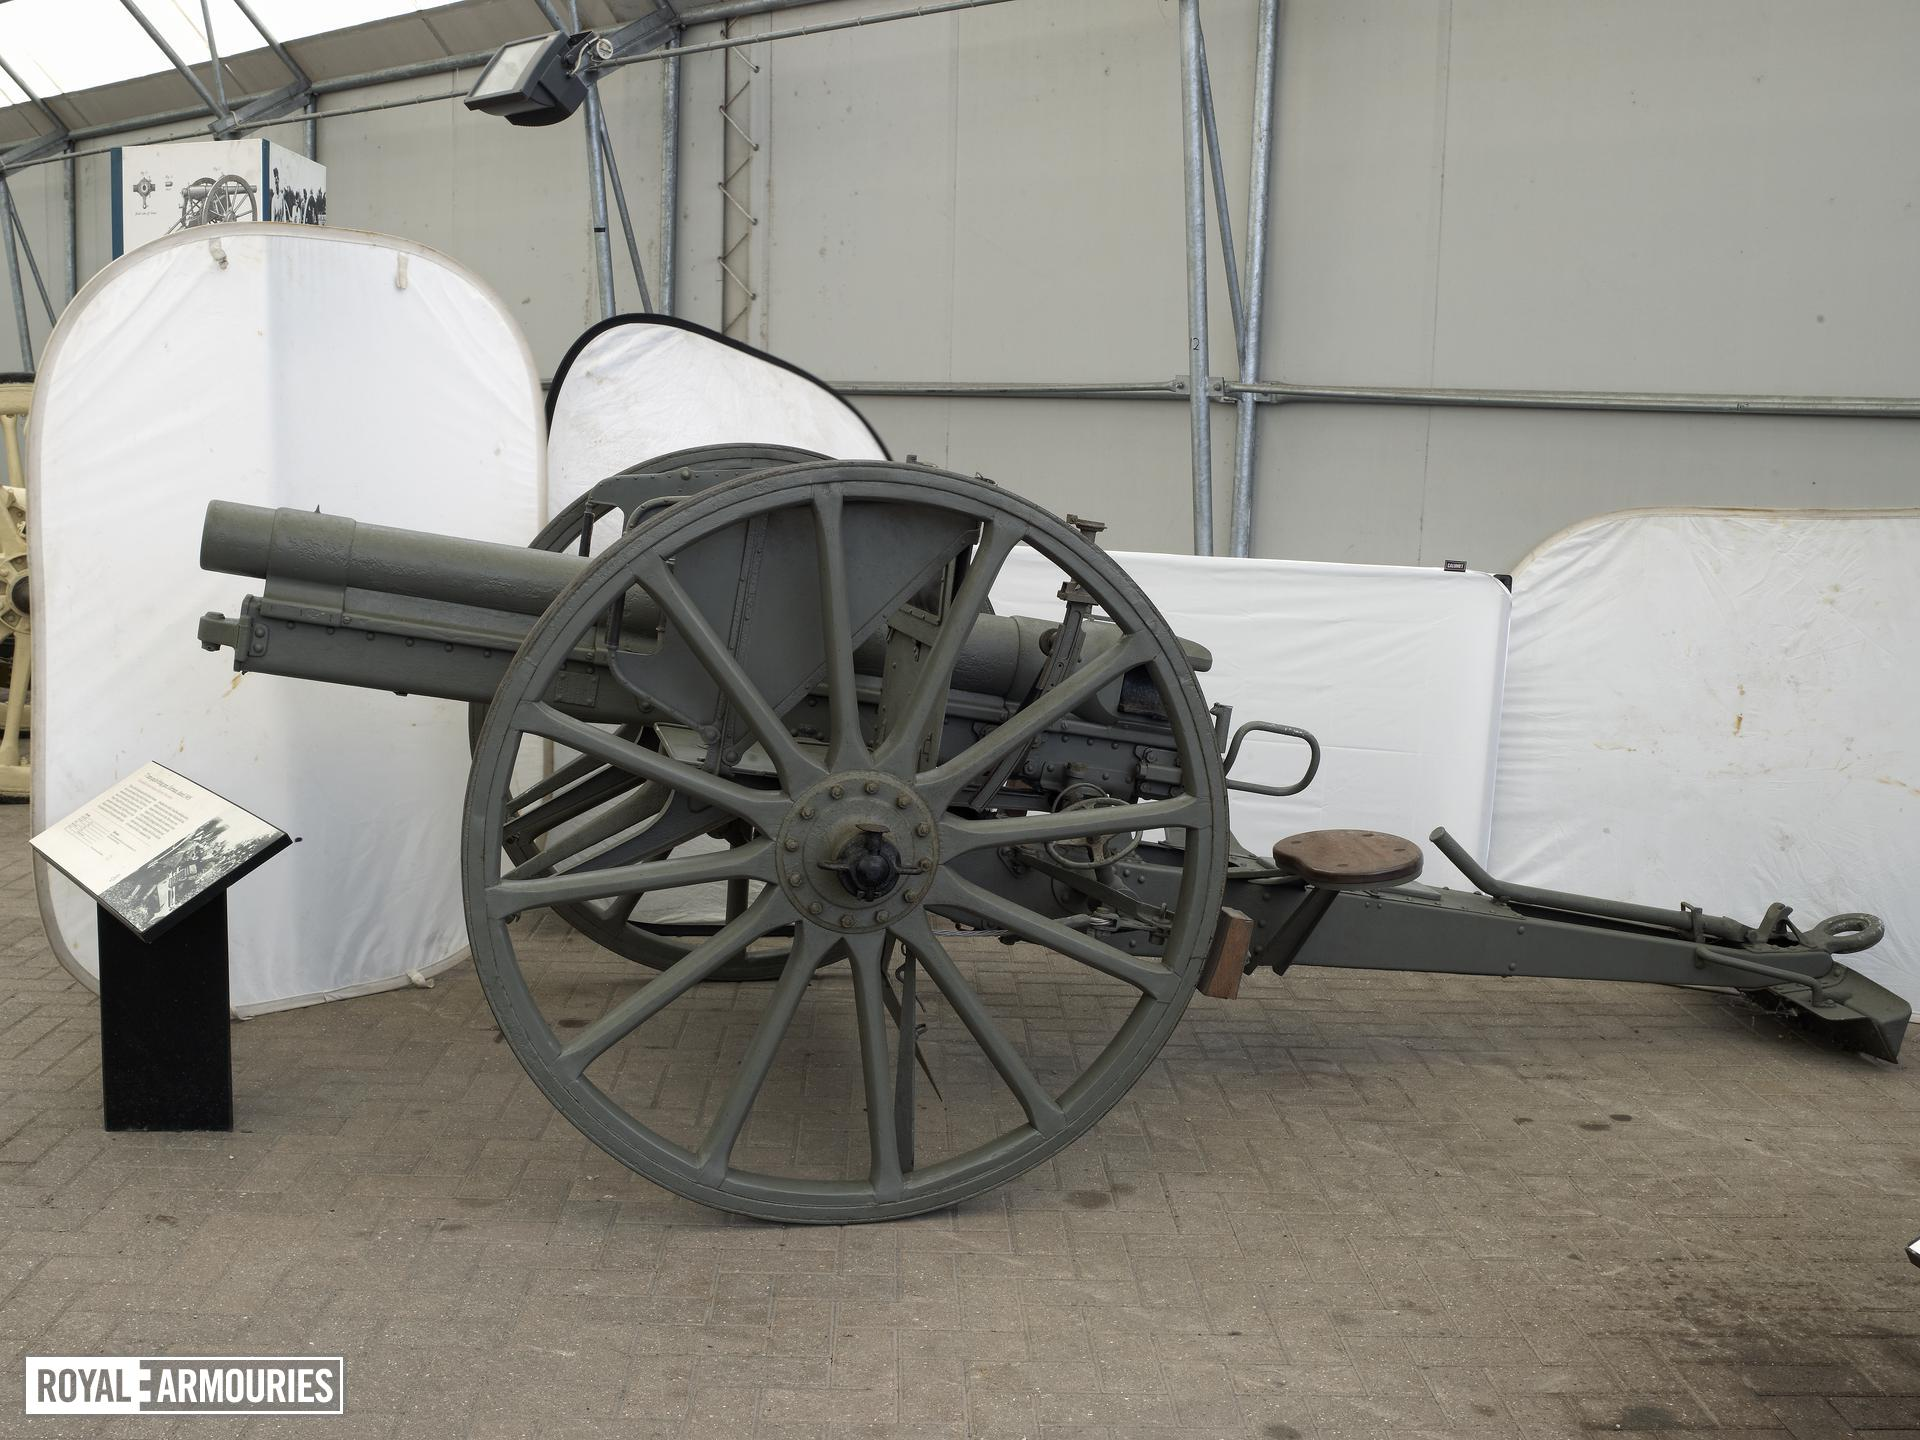 77 mm field gun and carriage - 77 mm Model 1896 RBL